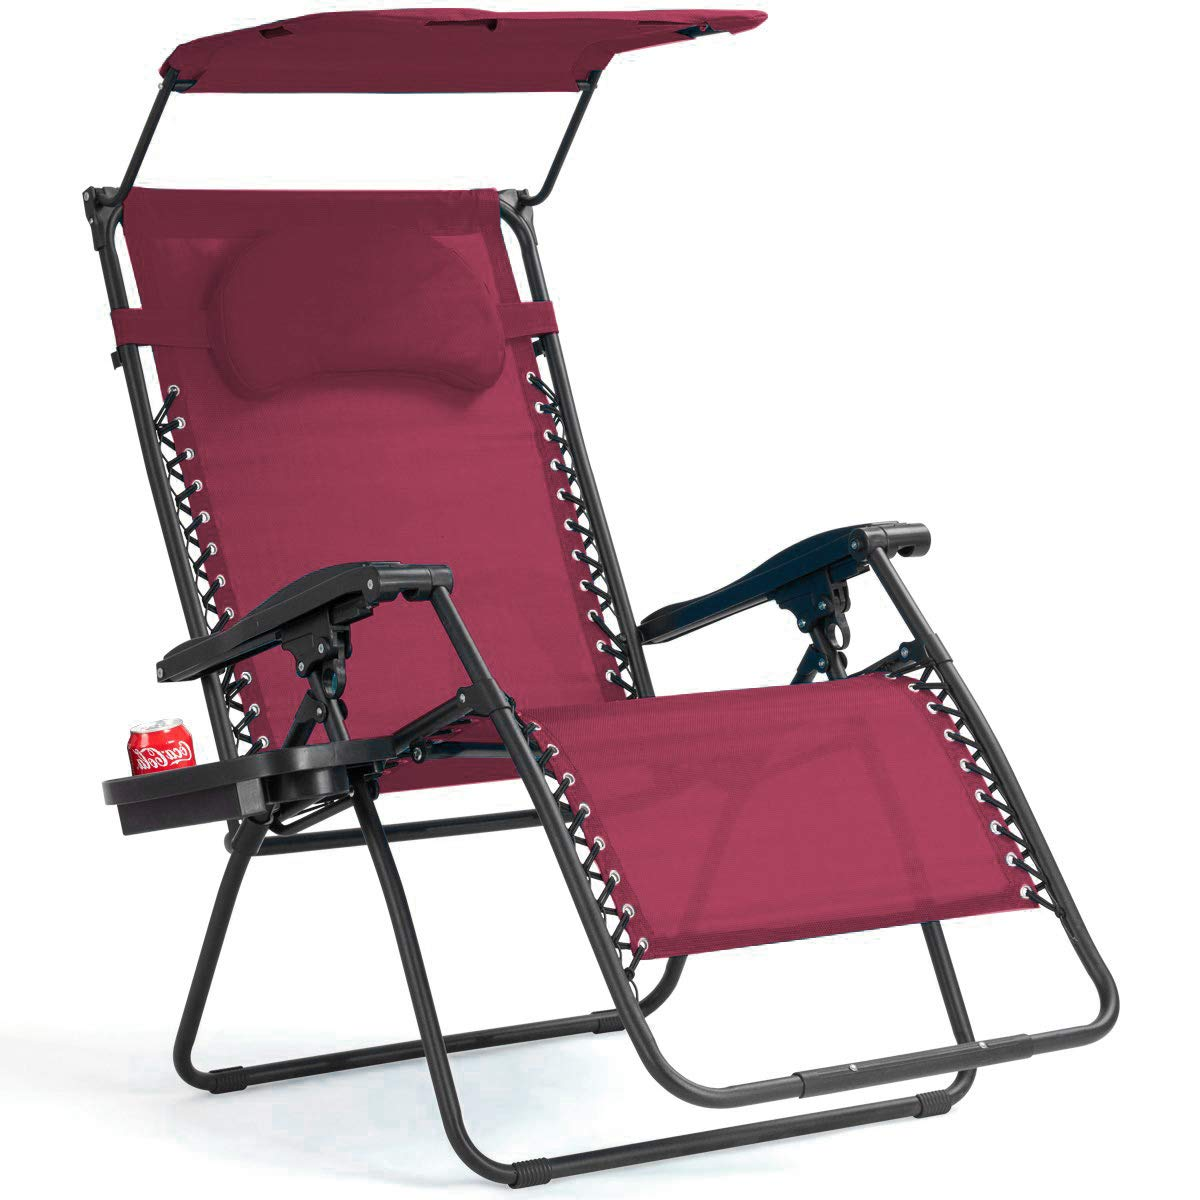 Goplus Folding Zero Gravity Lounge Chair Wide Recliner for Outdoor Beach Patio Pool w/Shade Canopy (Wine Zero Gravity Chair) by Goplus